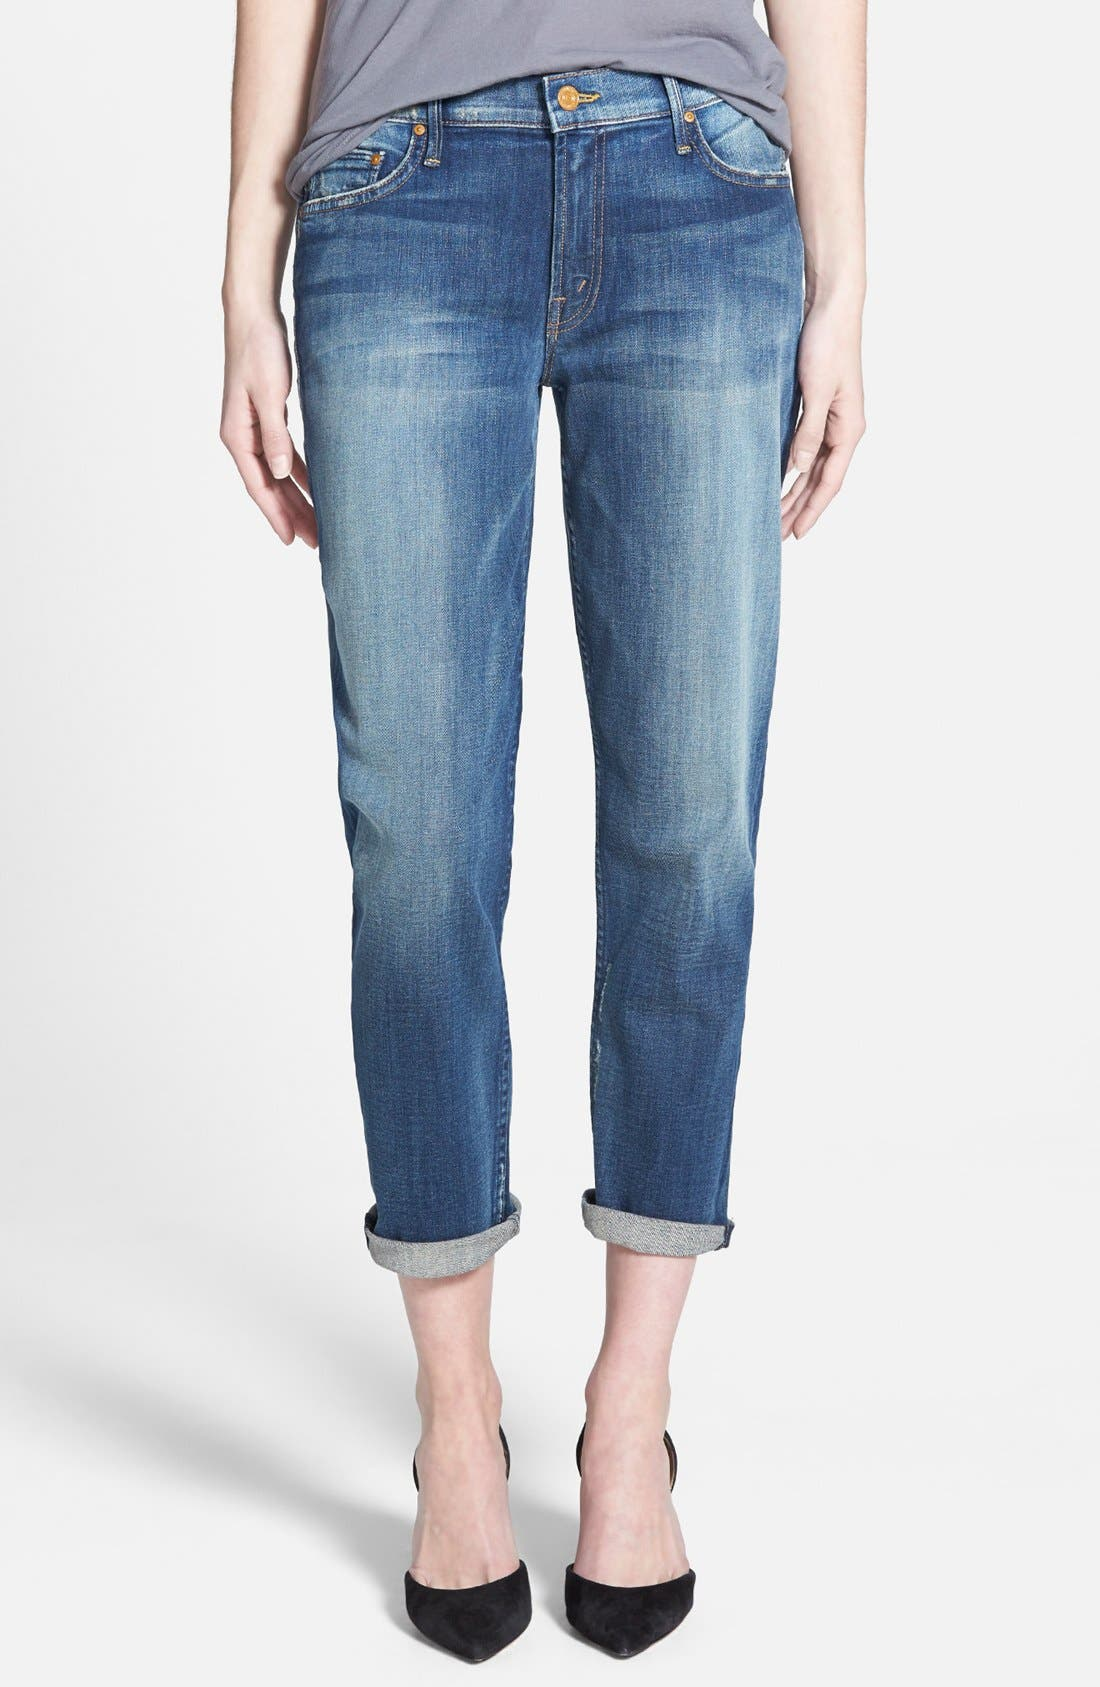 Alternate Image 1 Selected - MOTHER 'The Drop Out' Jeans (Tequila Truth)